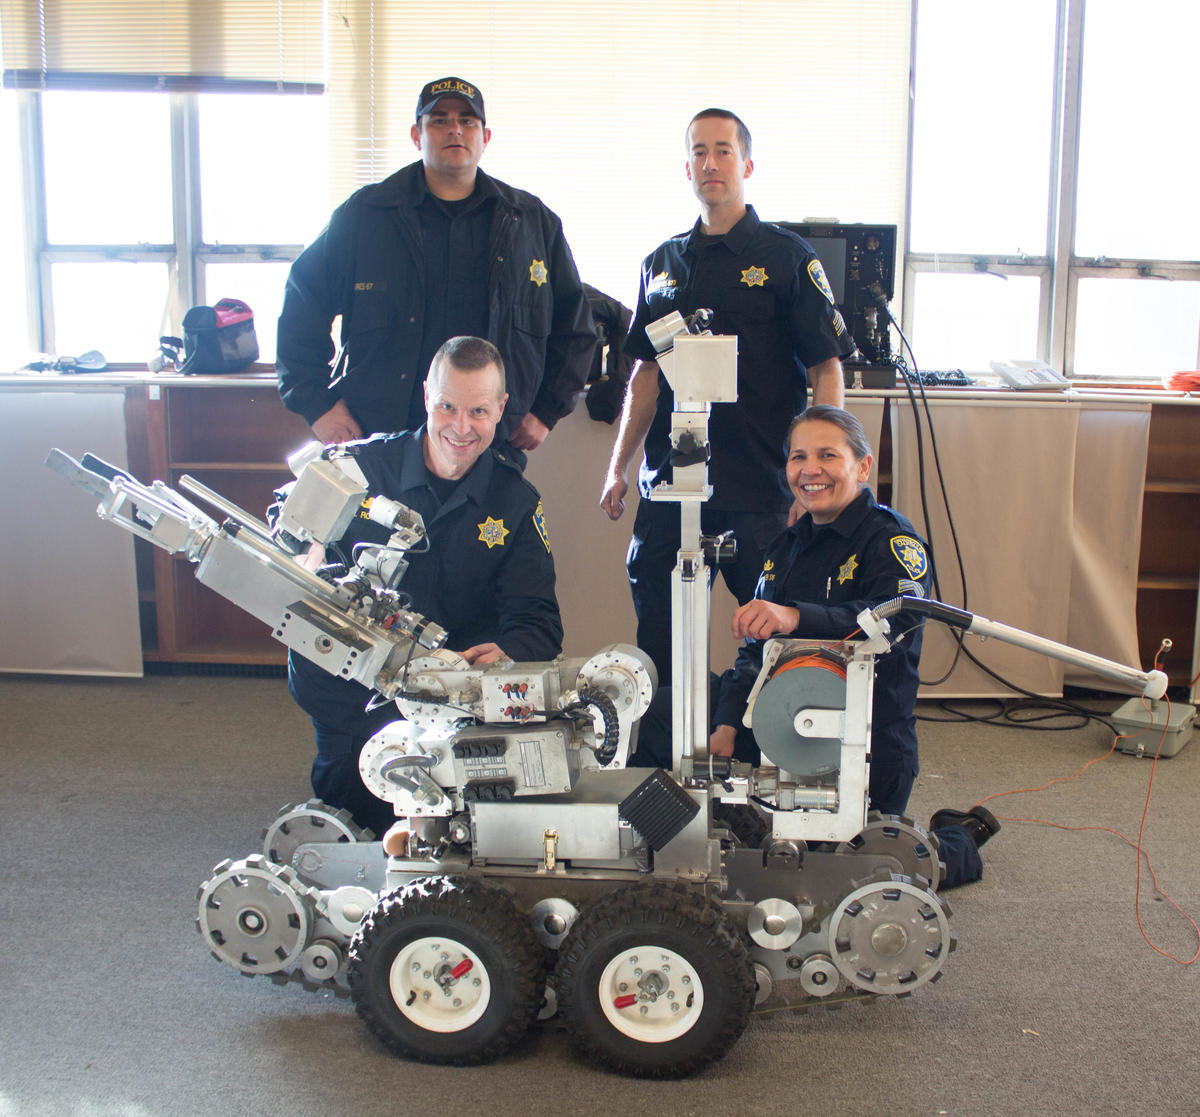 The Bomb Squad pictured with the Robot